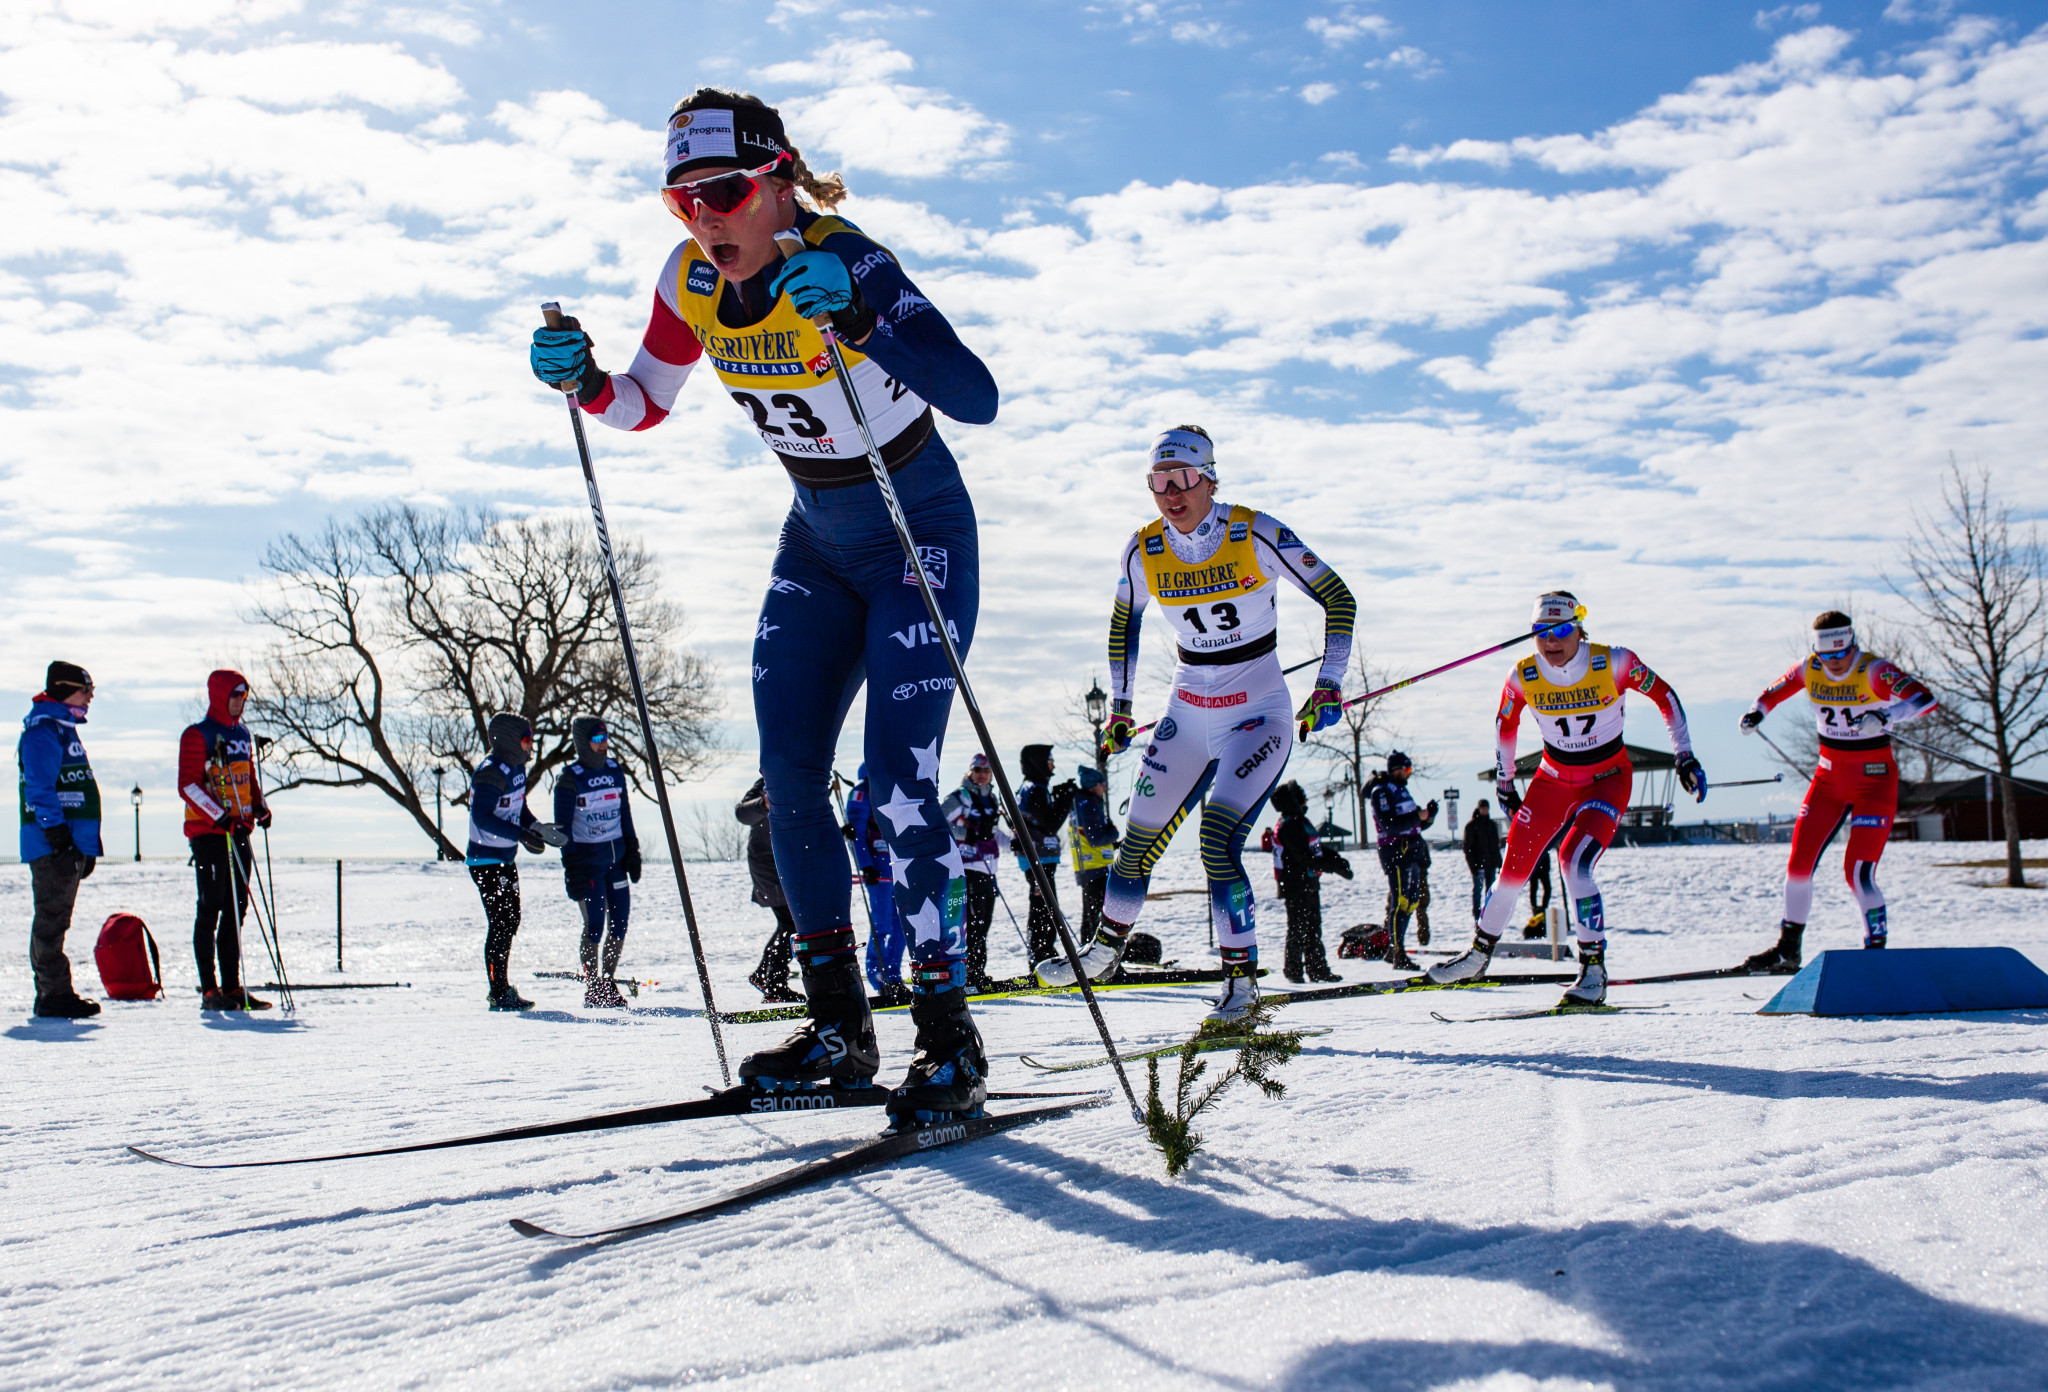 Cross-country officials assess preparations for inaugural Ski Tour